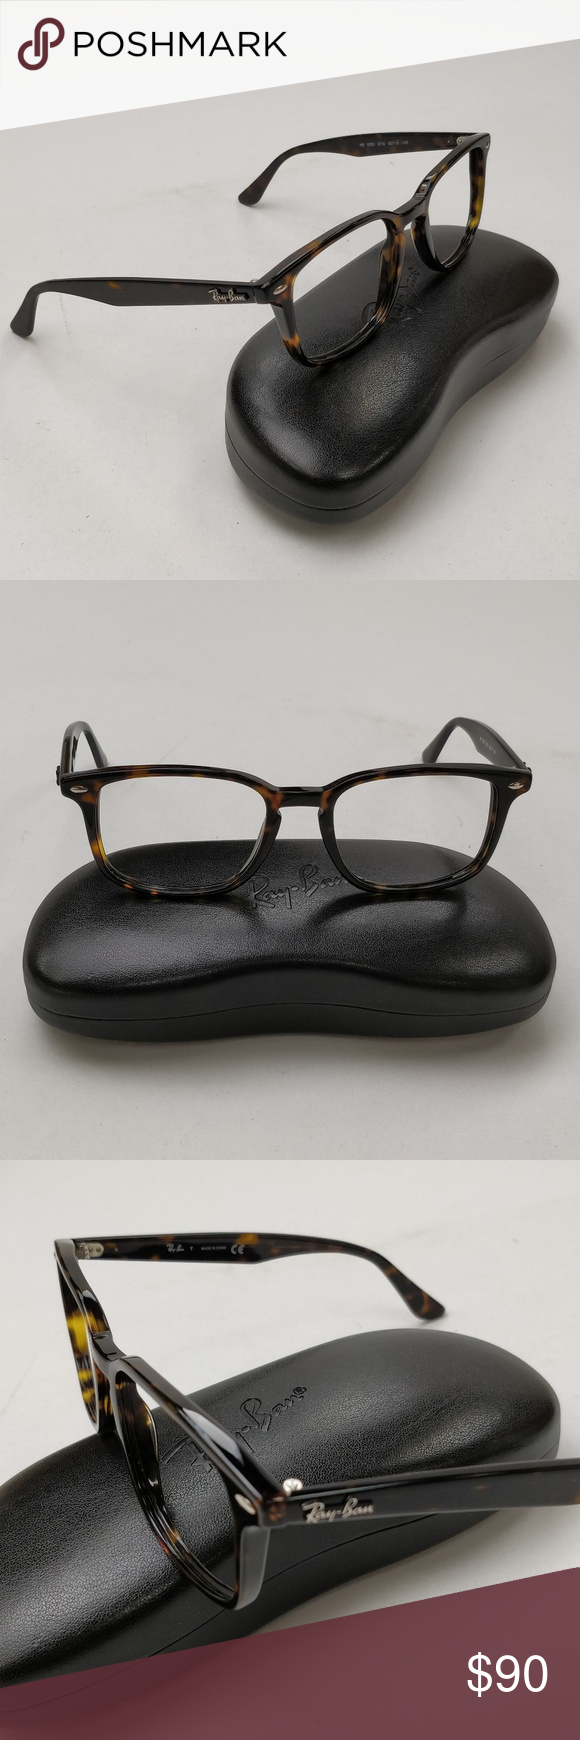 ae301e8a10 RayBan RB5353 2012 Eyeglasses w Case  EUI133 Excellent condition. No  defects. Please check pictures. Frame without lenses. Frame and Temples  color  Tortoise ...